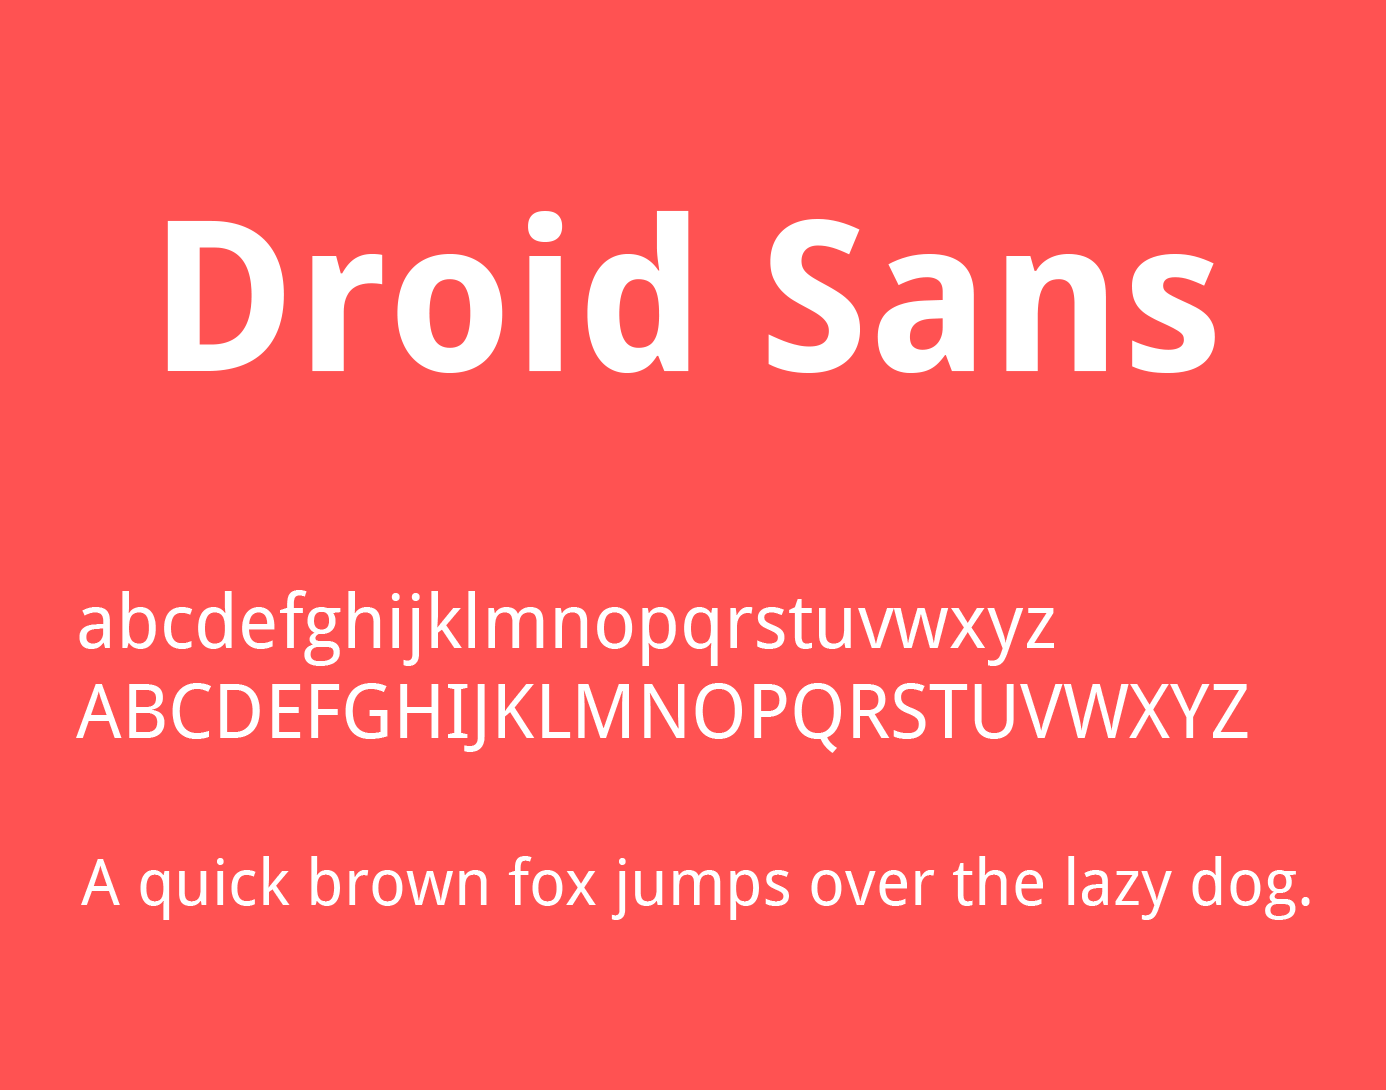 https://fontclarity.com/wp-content/uploads/2019/09/droid-sans-download-0.png Free Download